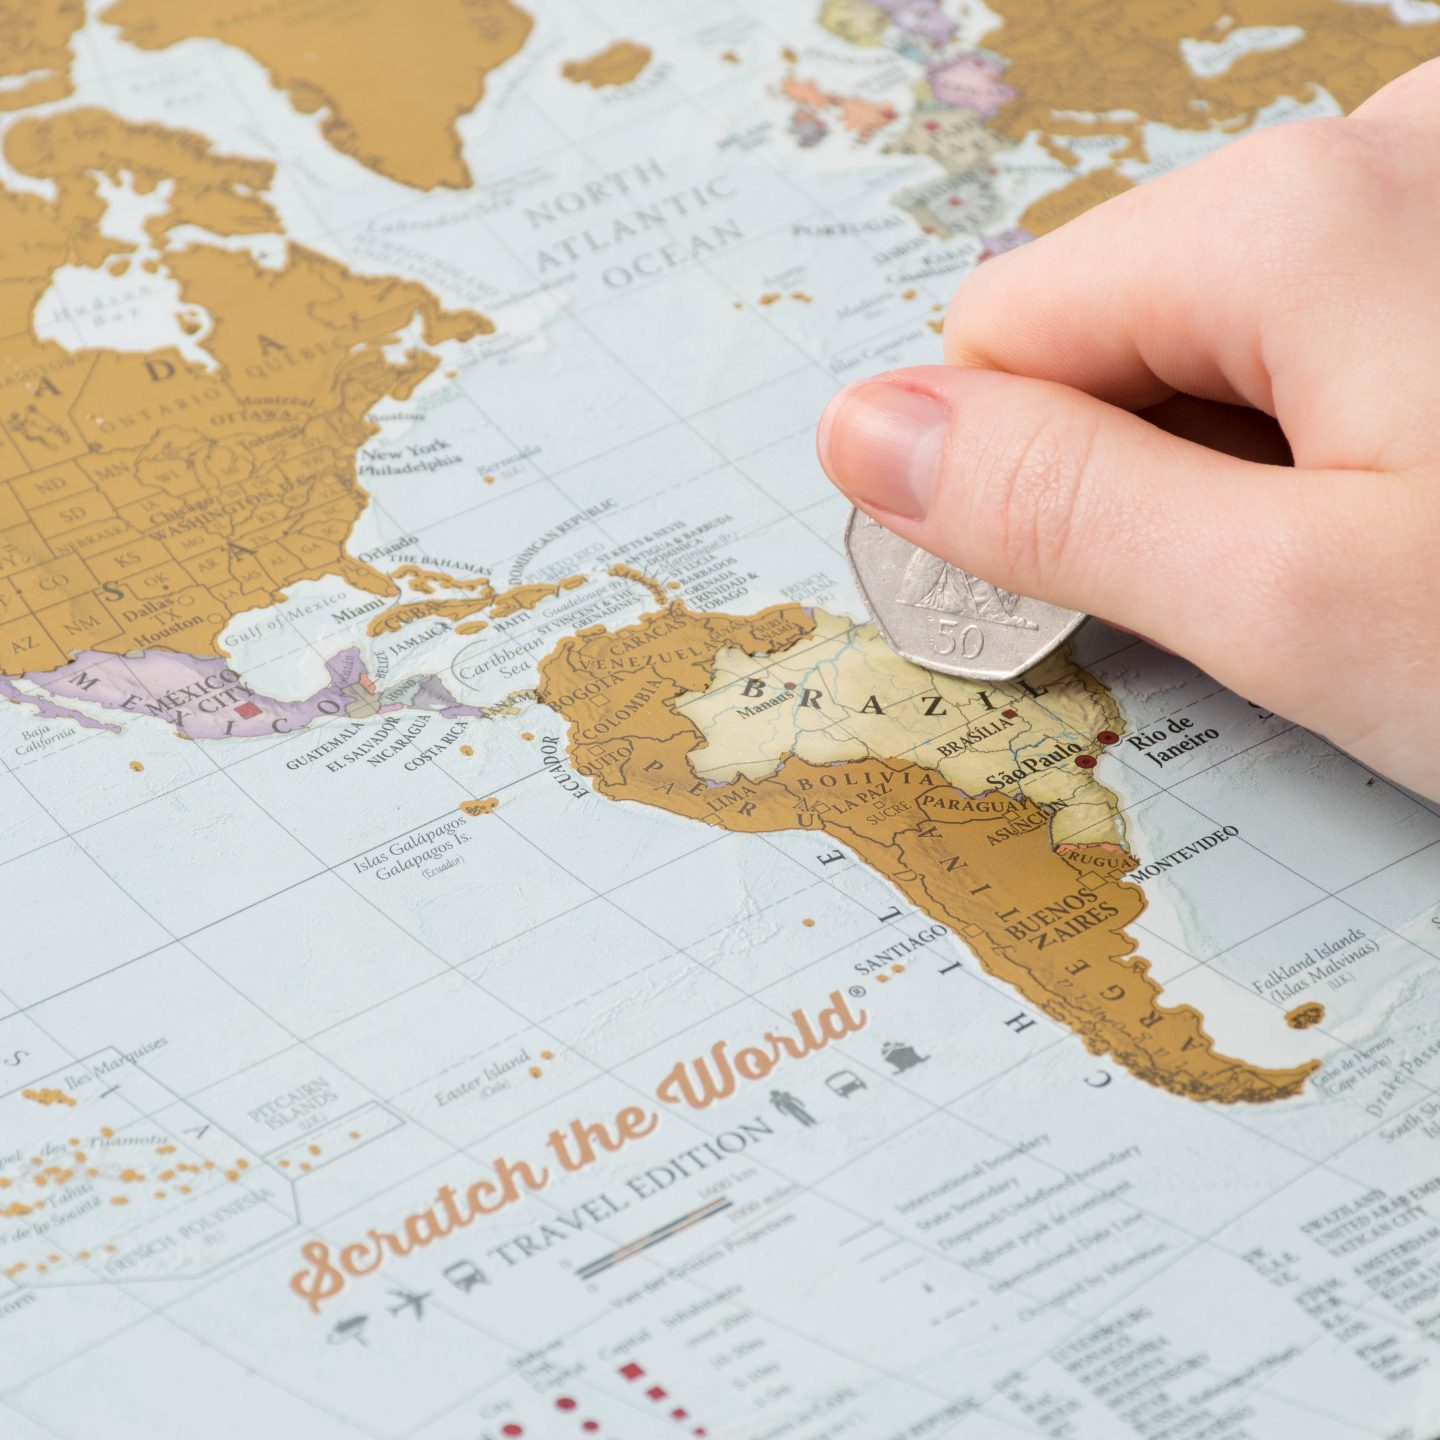 Relive Dad's travels with a Scratch the World print for Father's Day [GIVEAWAY] #MapsForDad